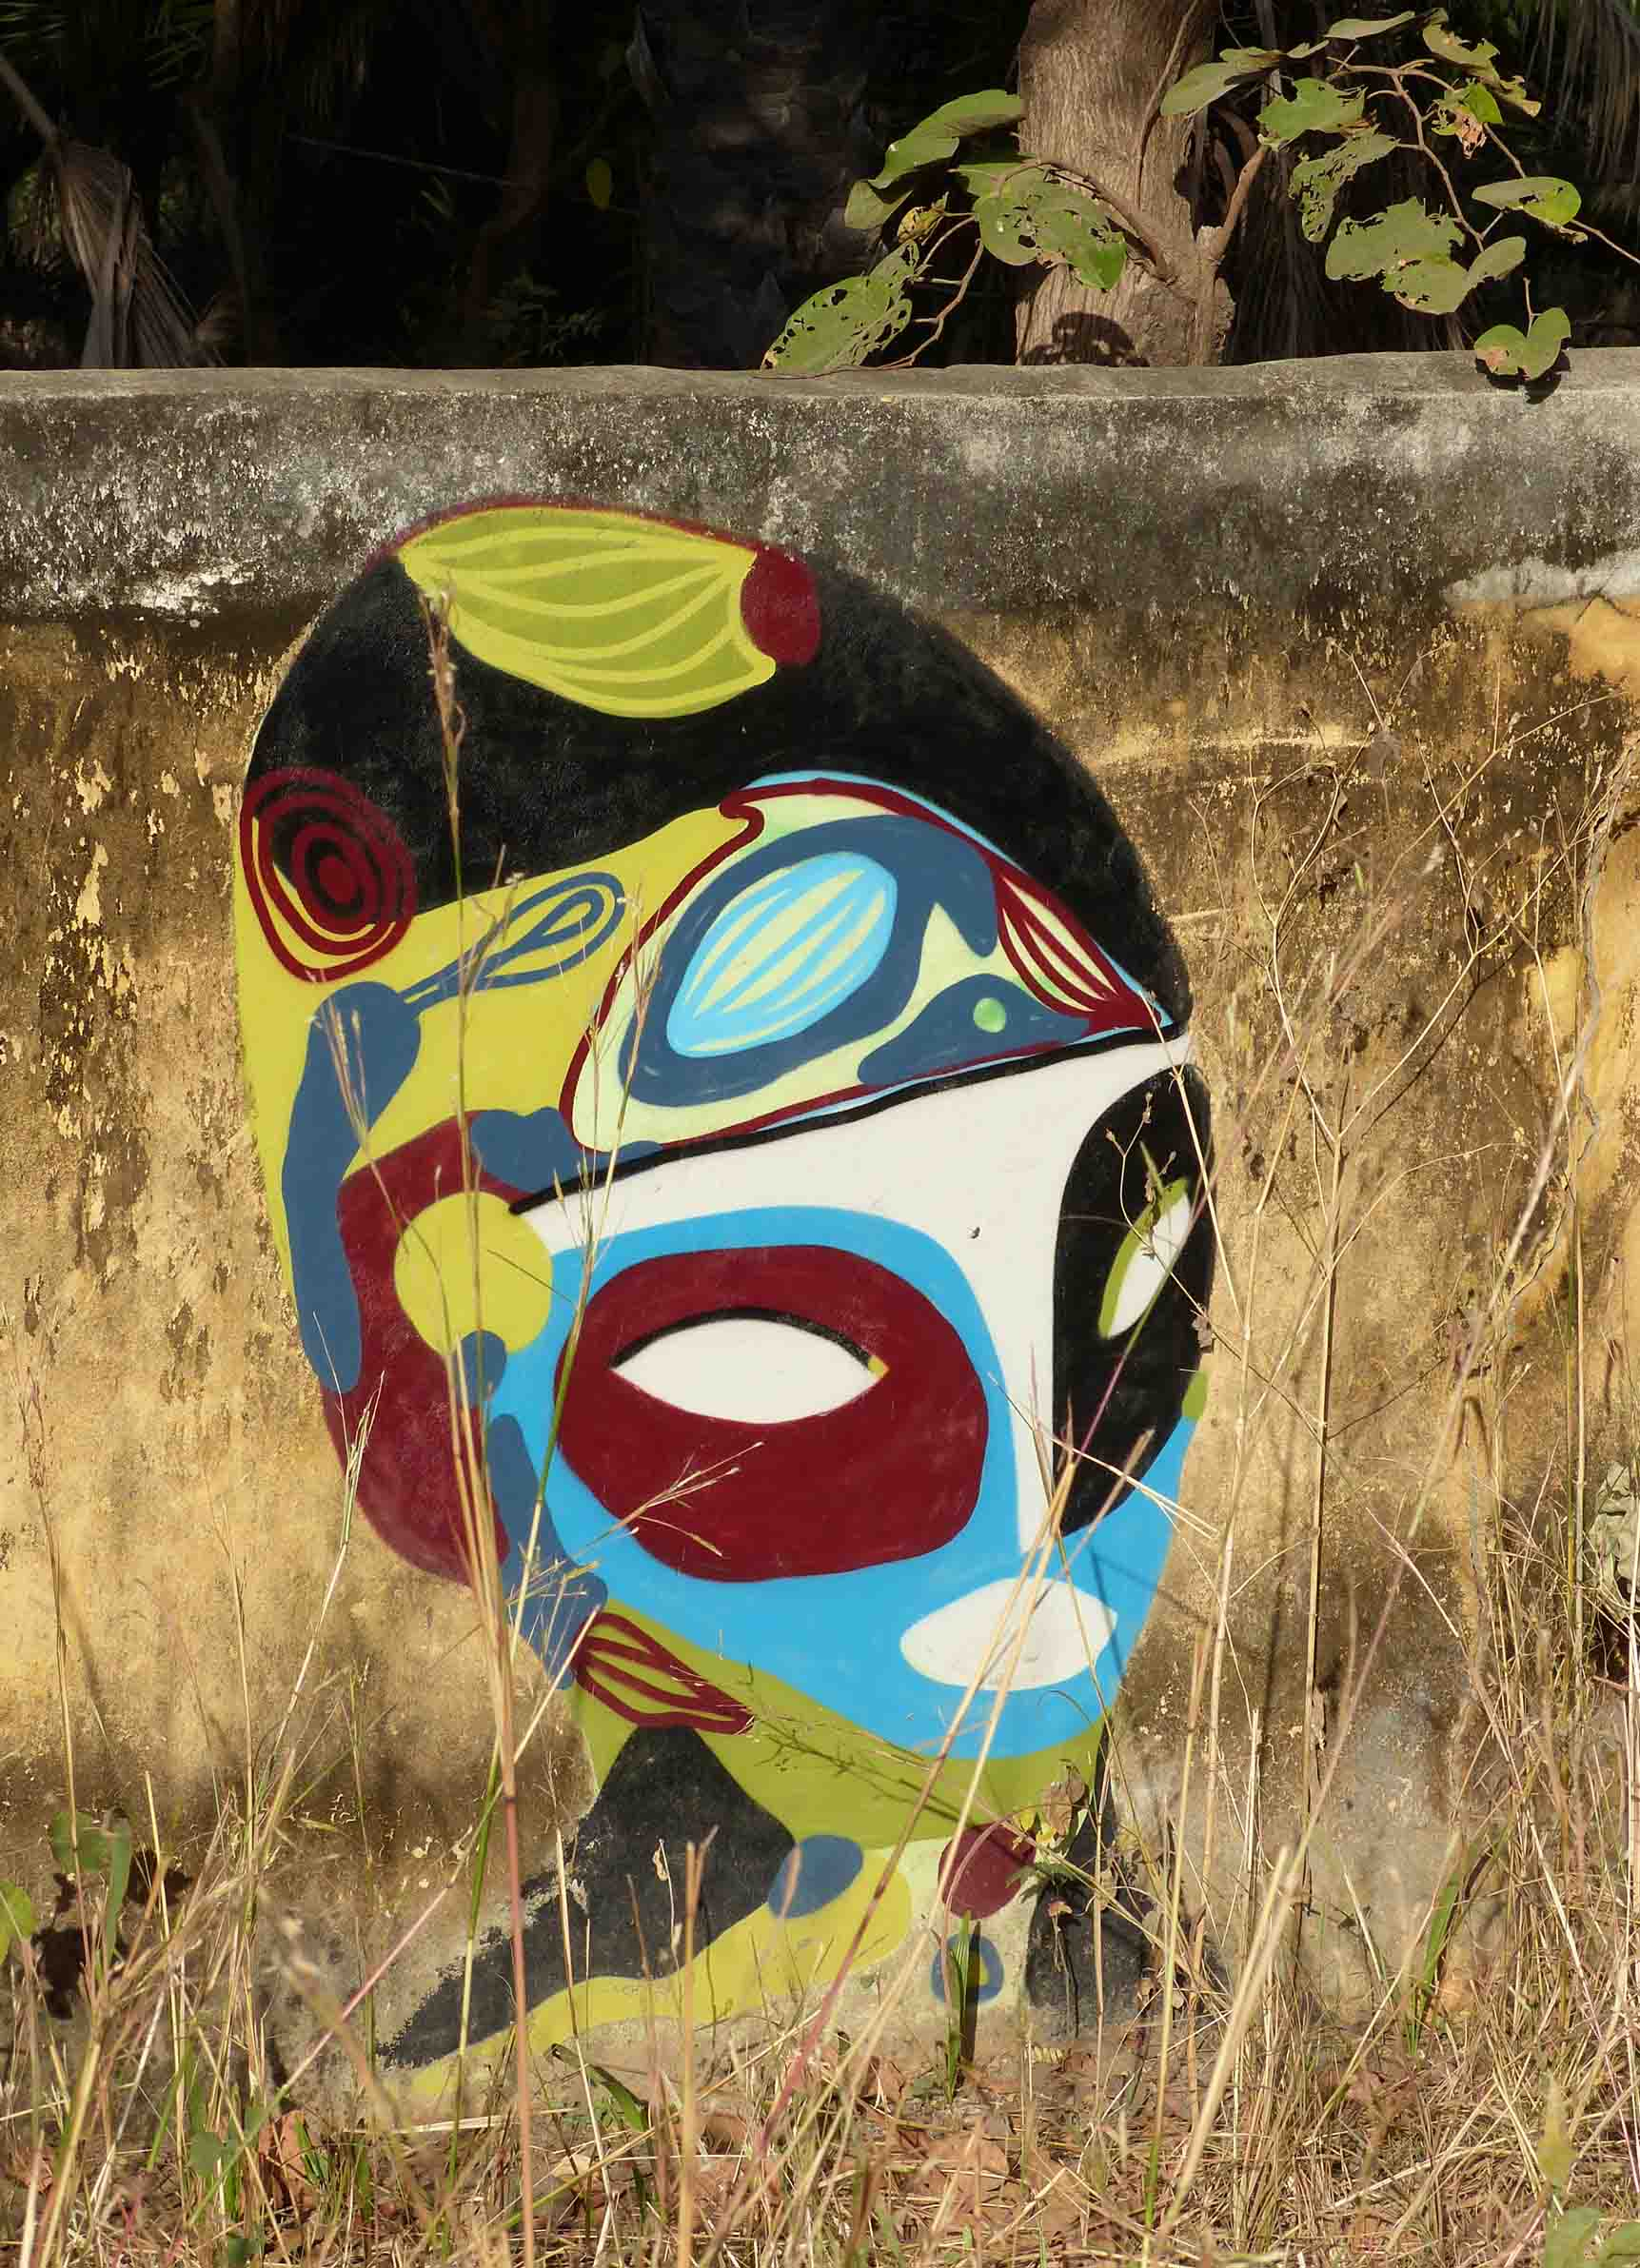 Colourful mural of a face